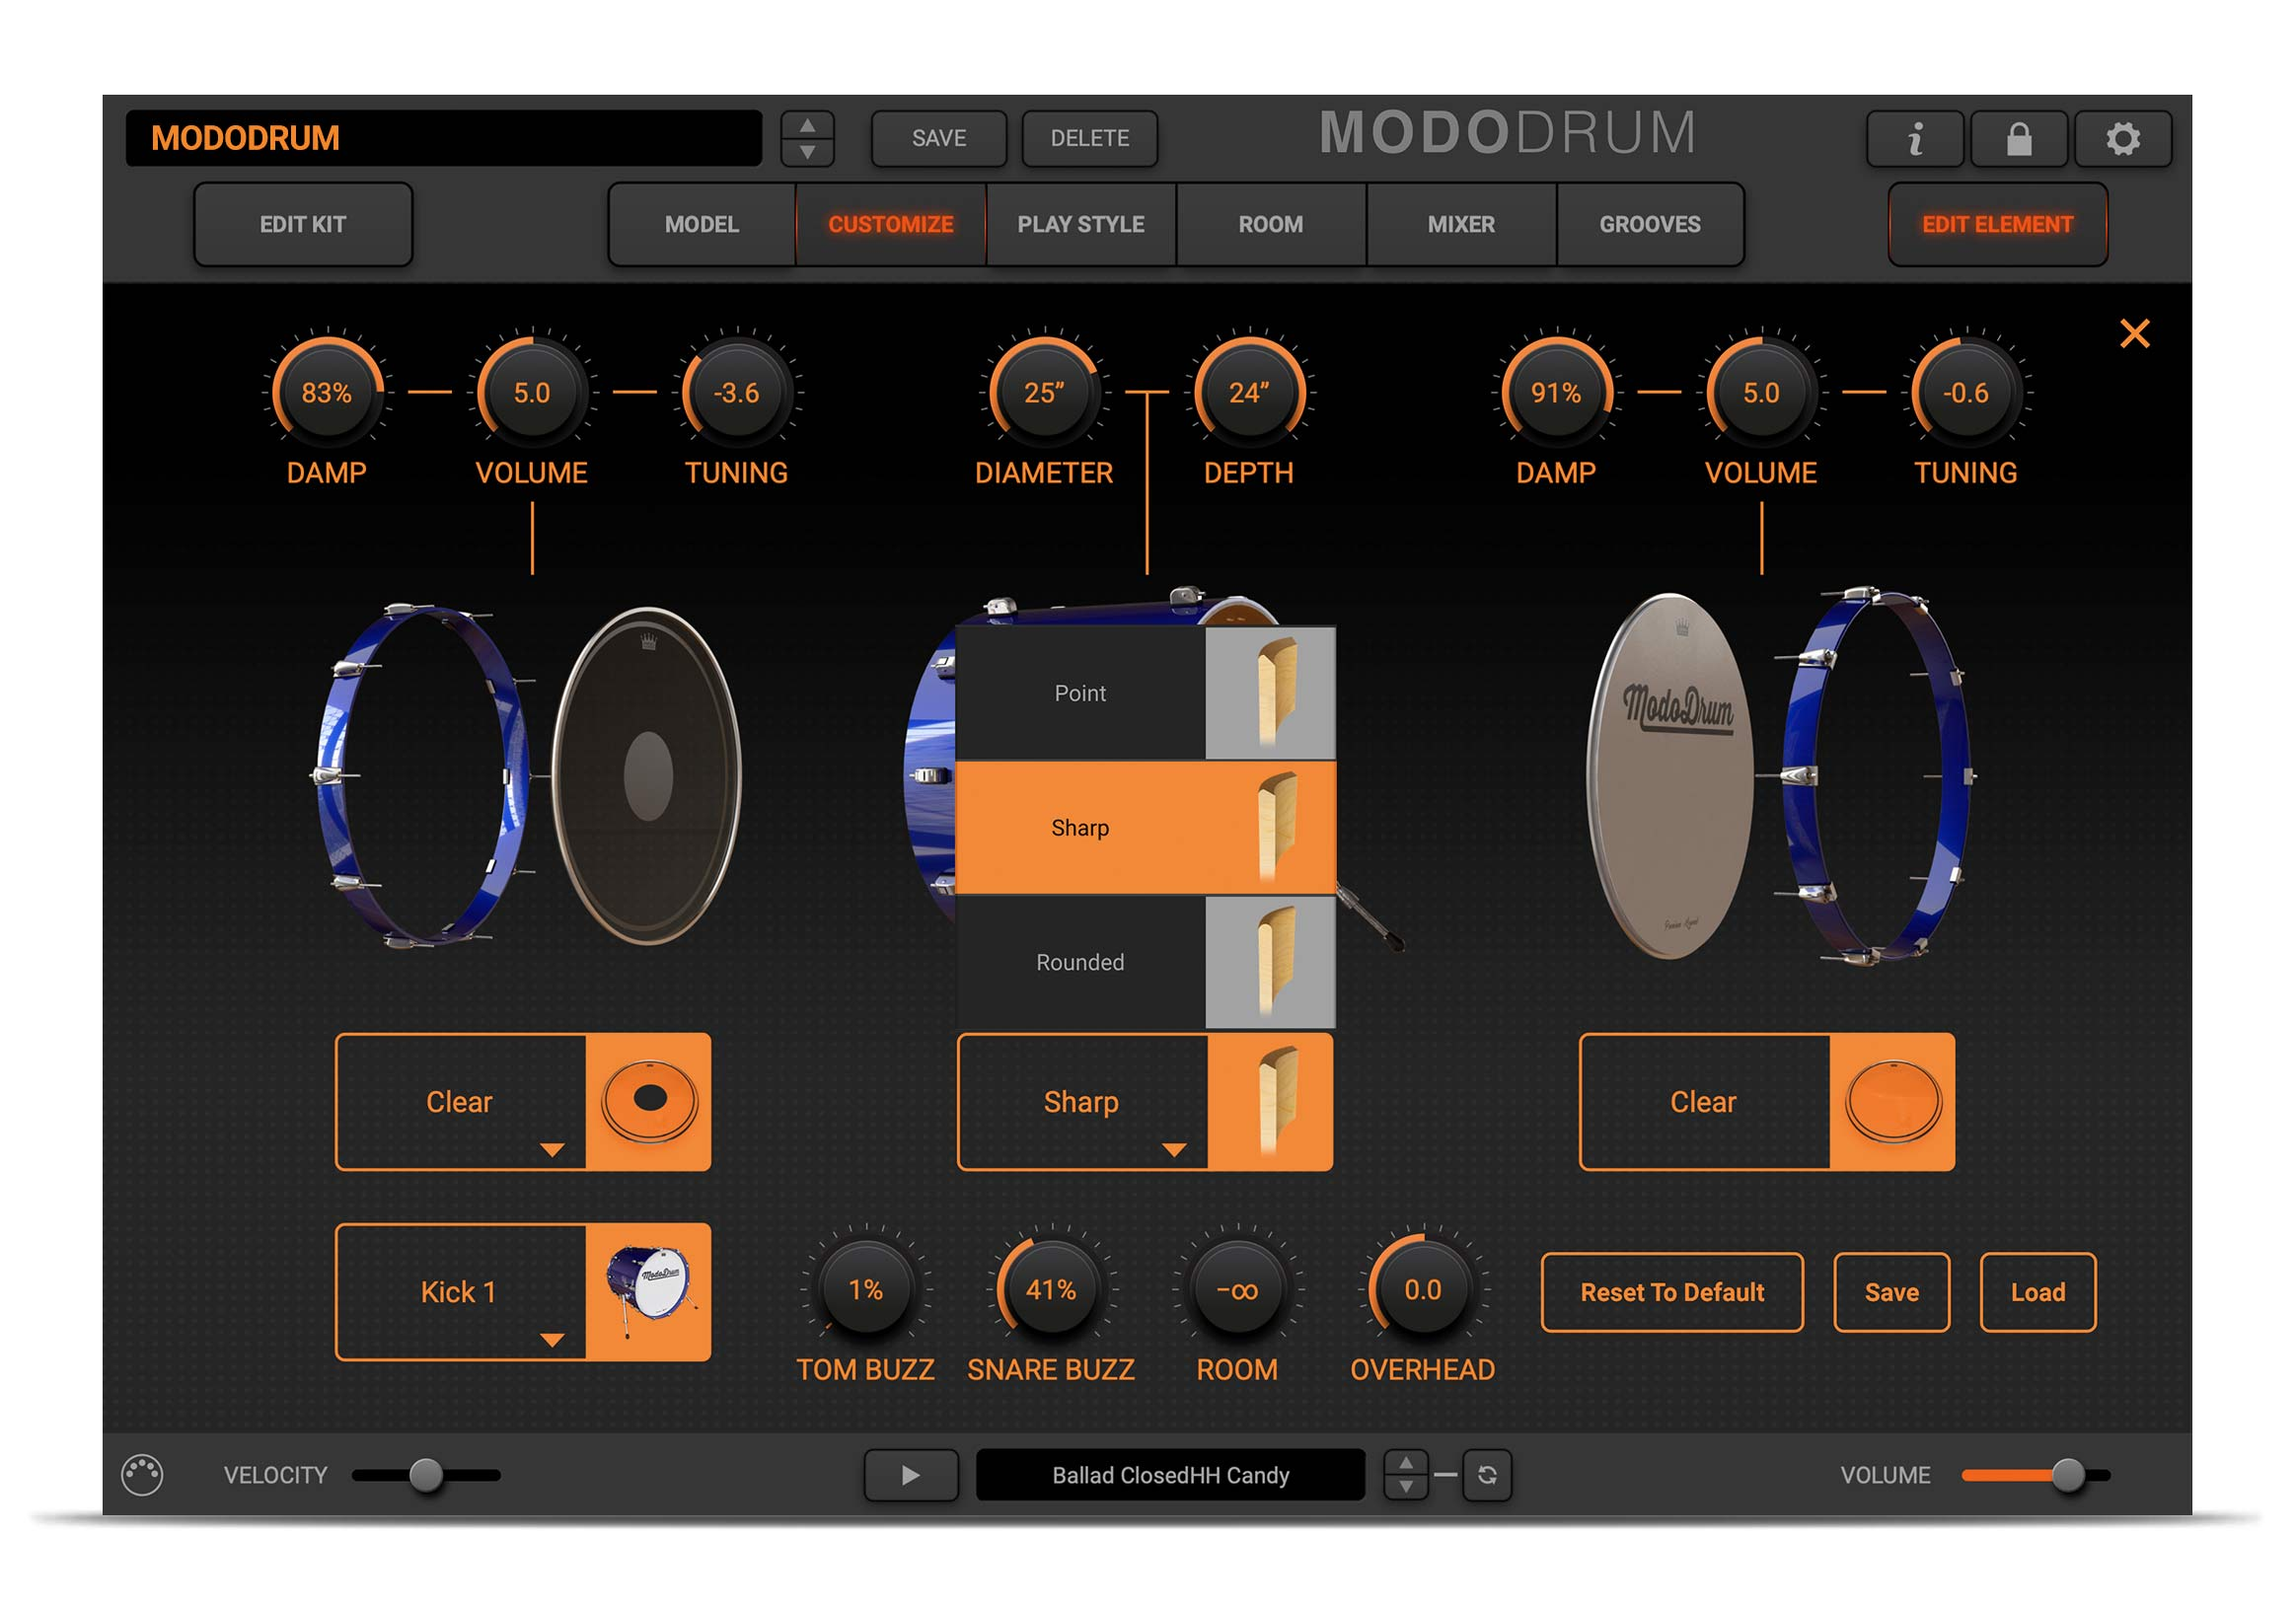 MODO DRUM customization